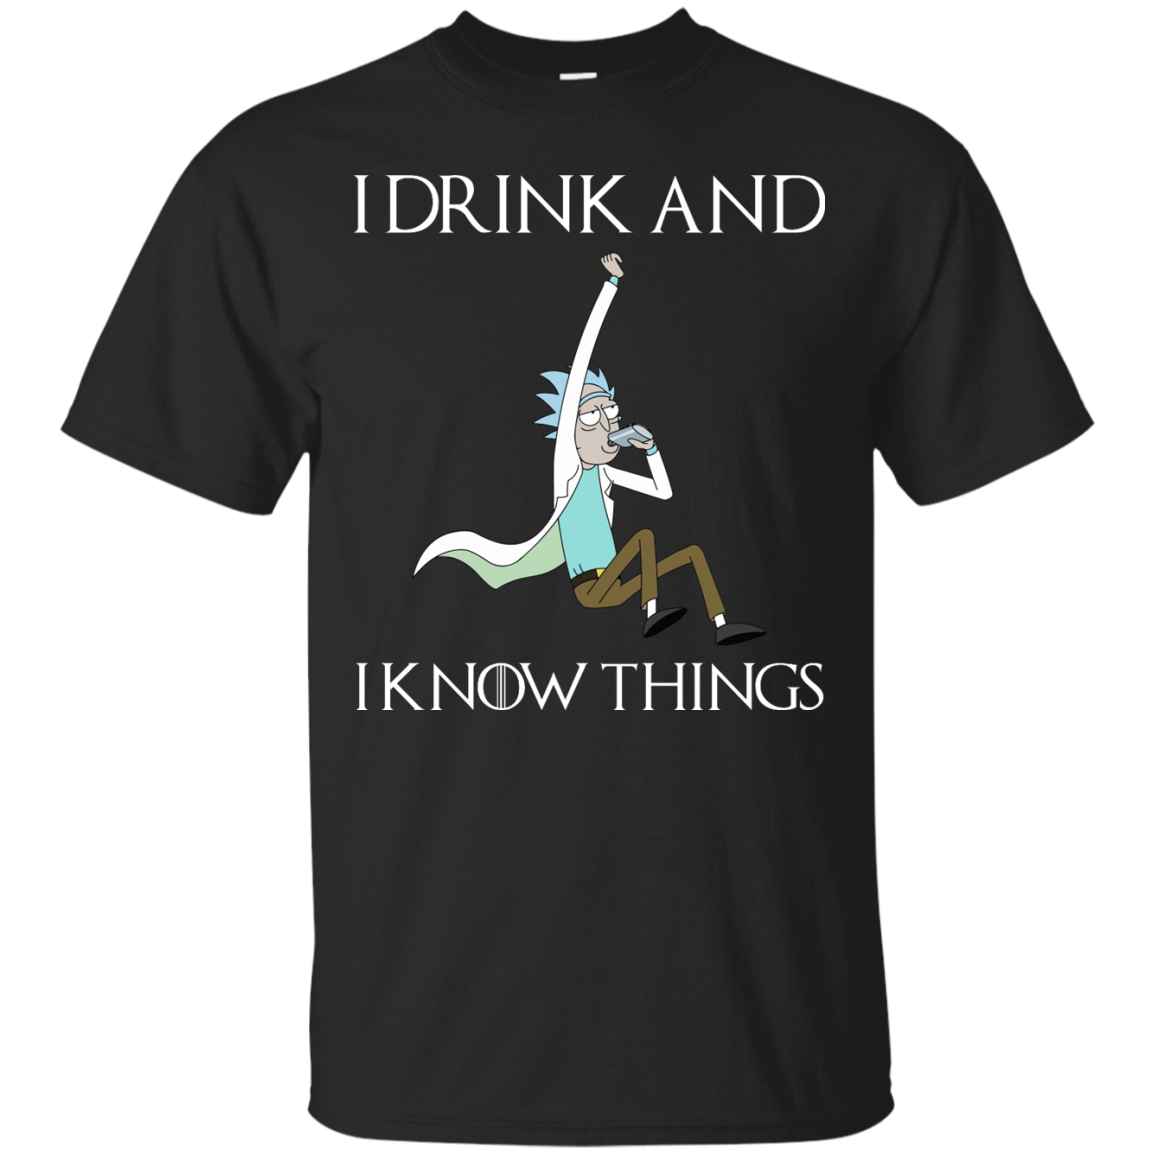 c495a1bf Game of Thrones X Rick and Morty I Drink and I Know Things T-Shirt ...